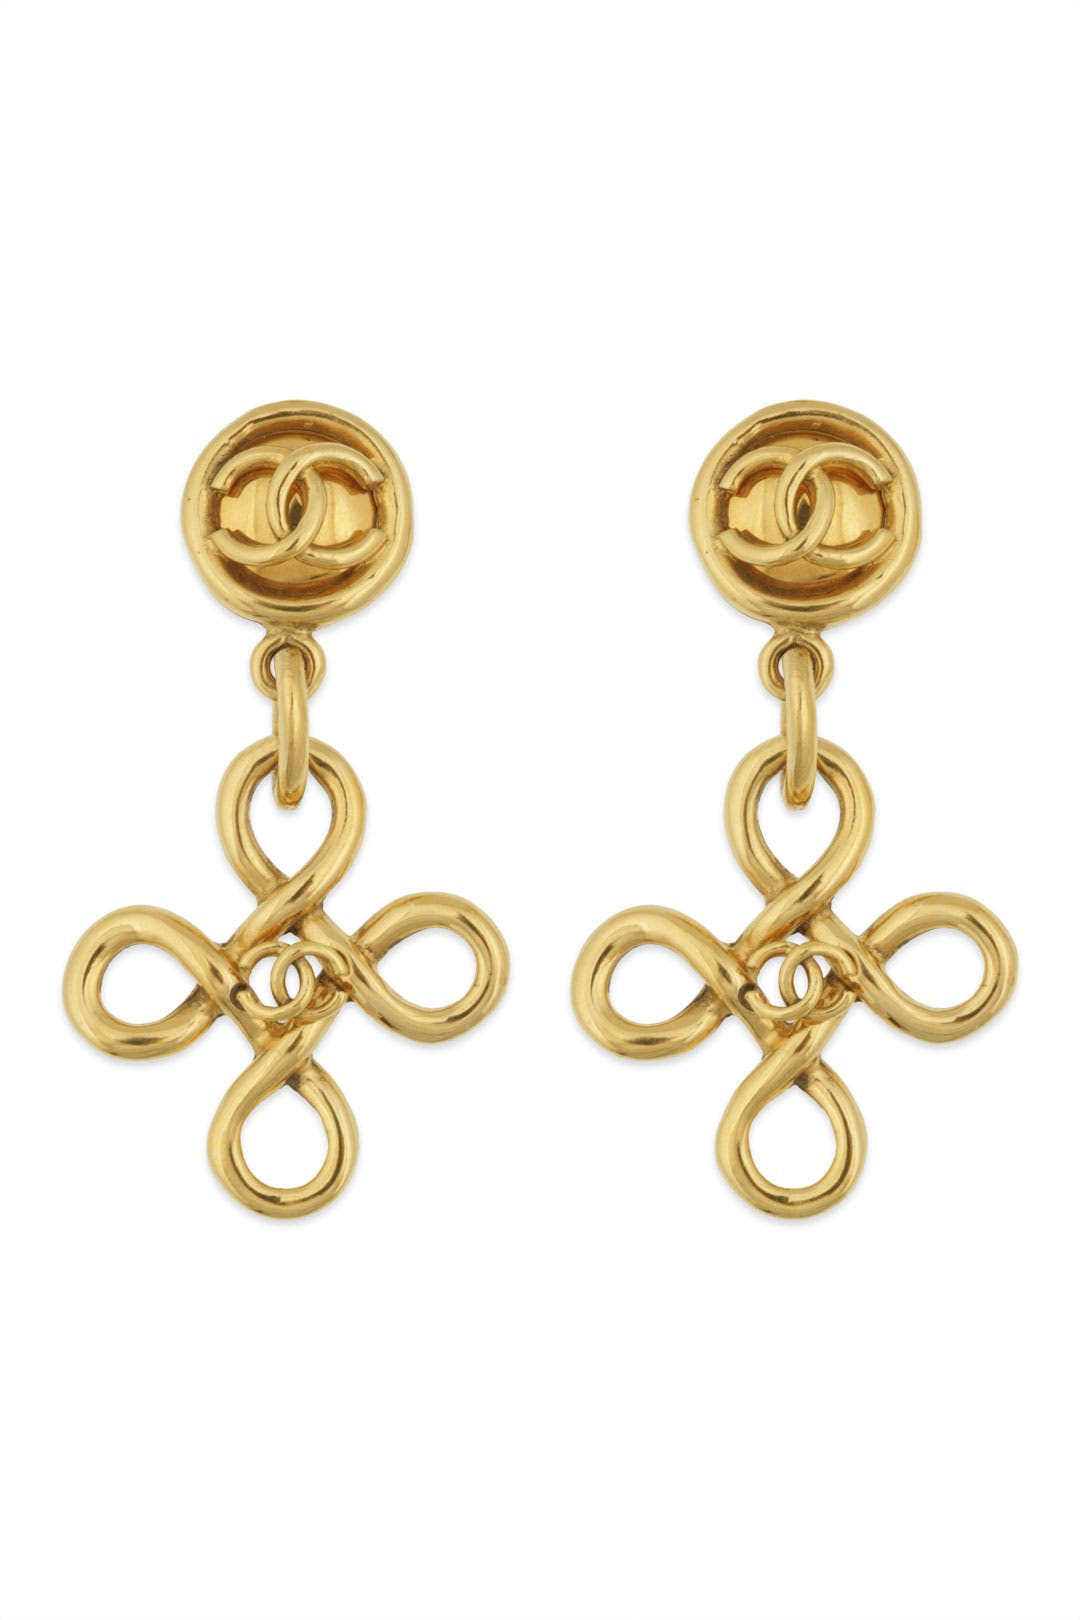 Vintage Chanel Coco Cross Dangle Earring by WGACA Vintage